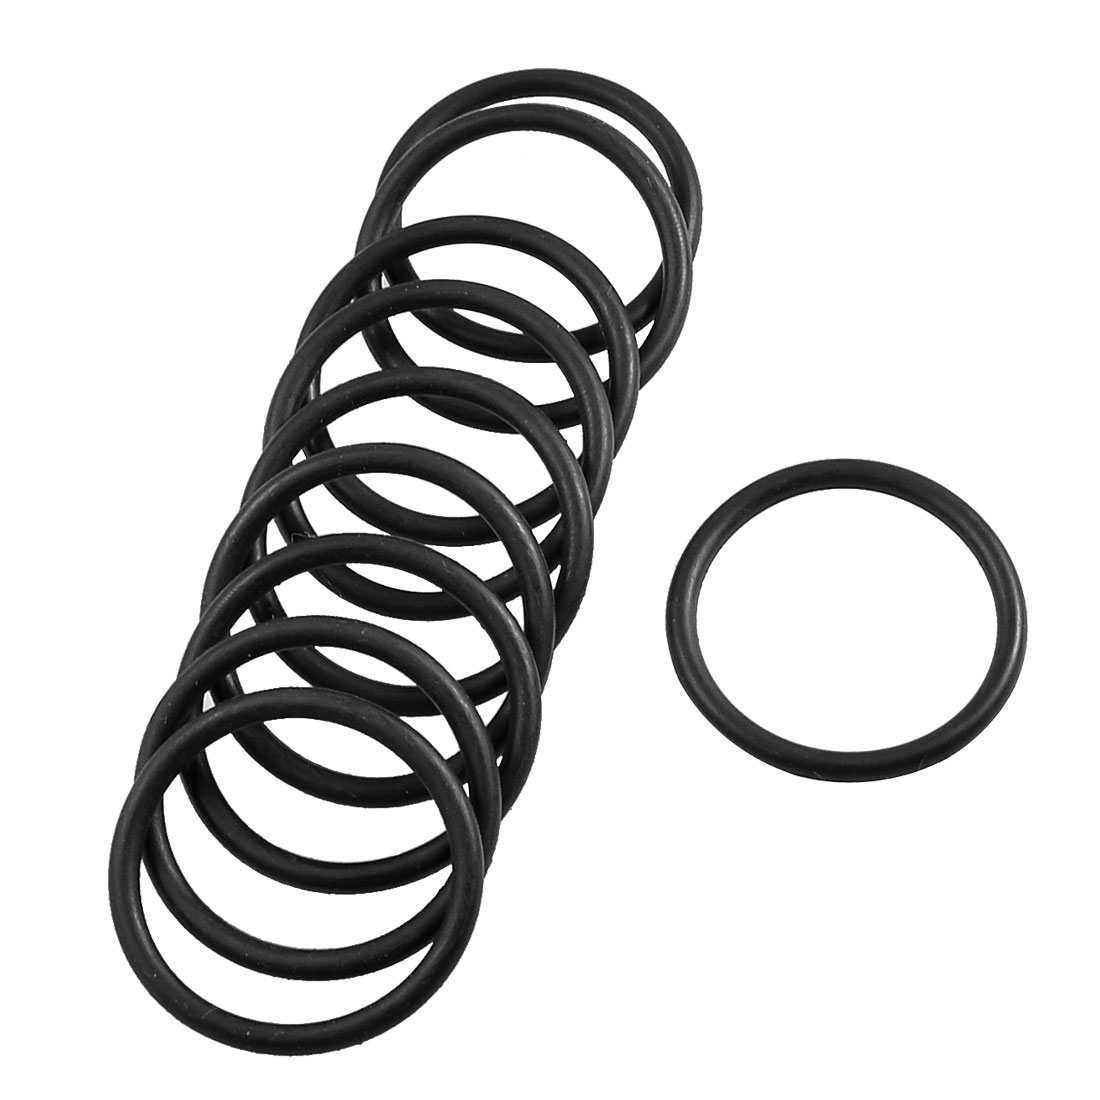 10 Pcs Mechanical Black Rubber O Ring Oil Seal Gaskets 36mm x 30mm x 3.1mm